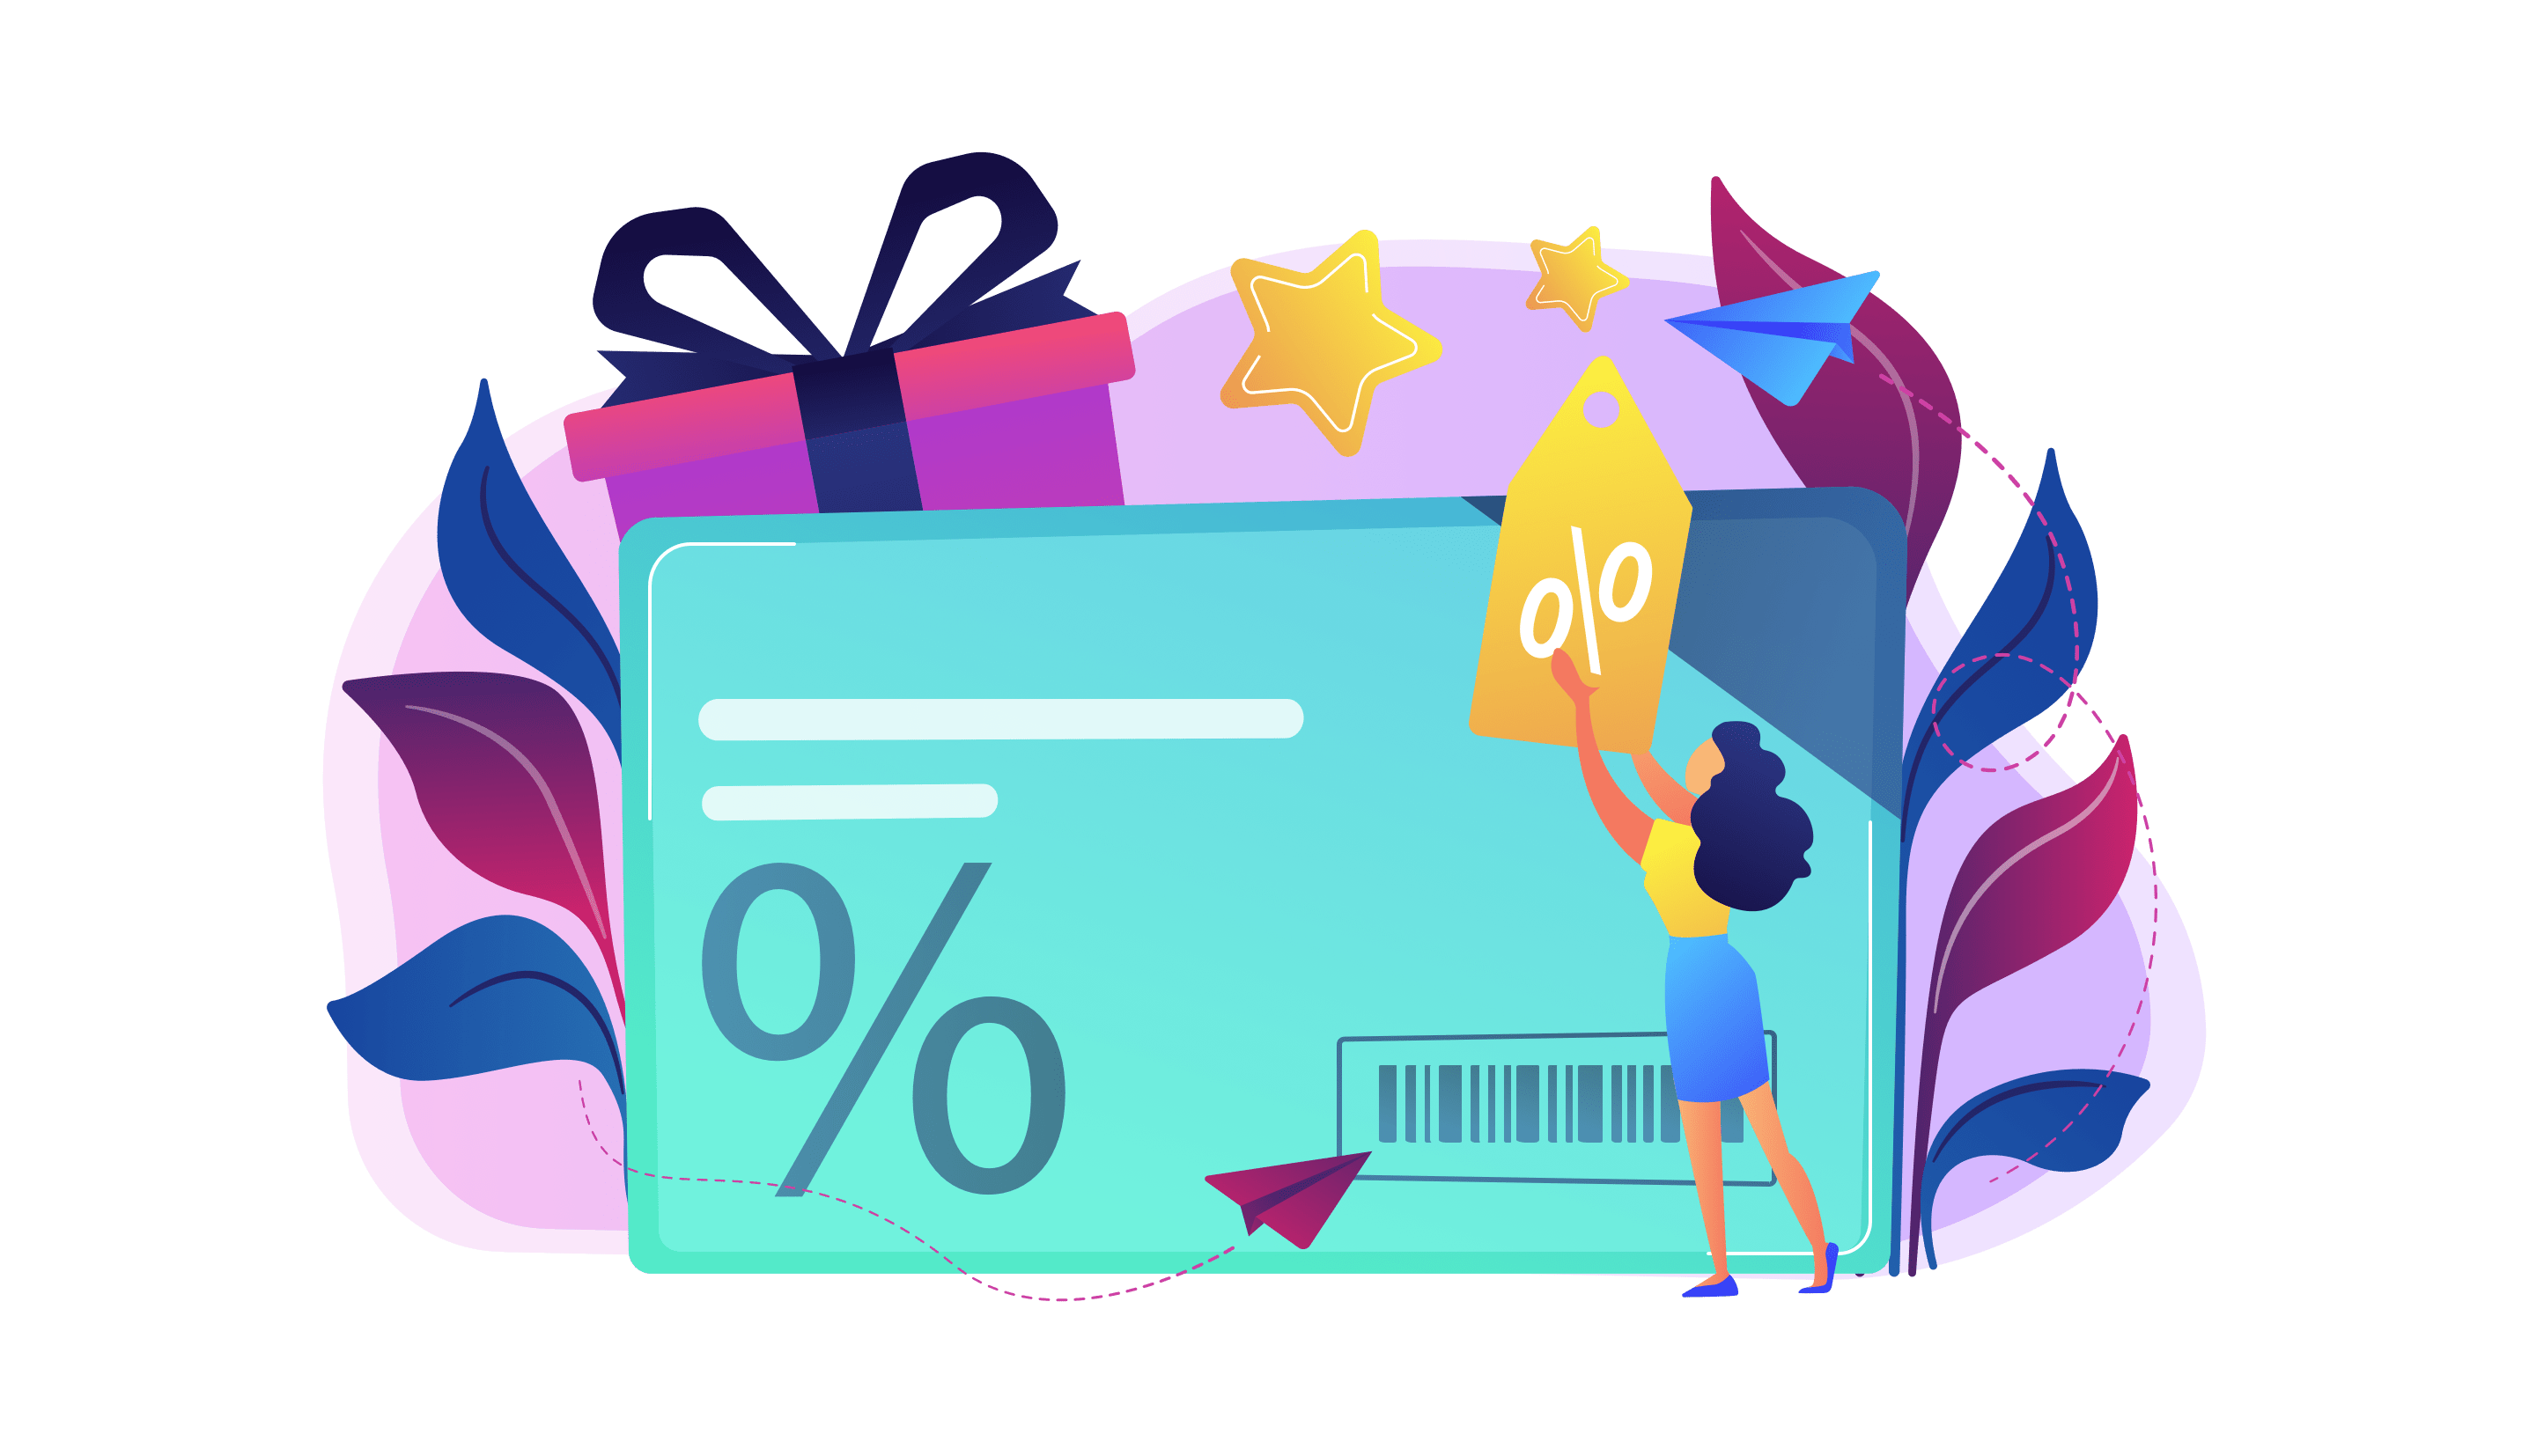 payments-gift-card-illustration